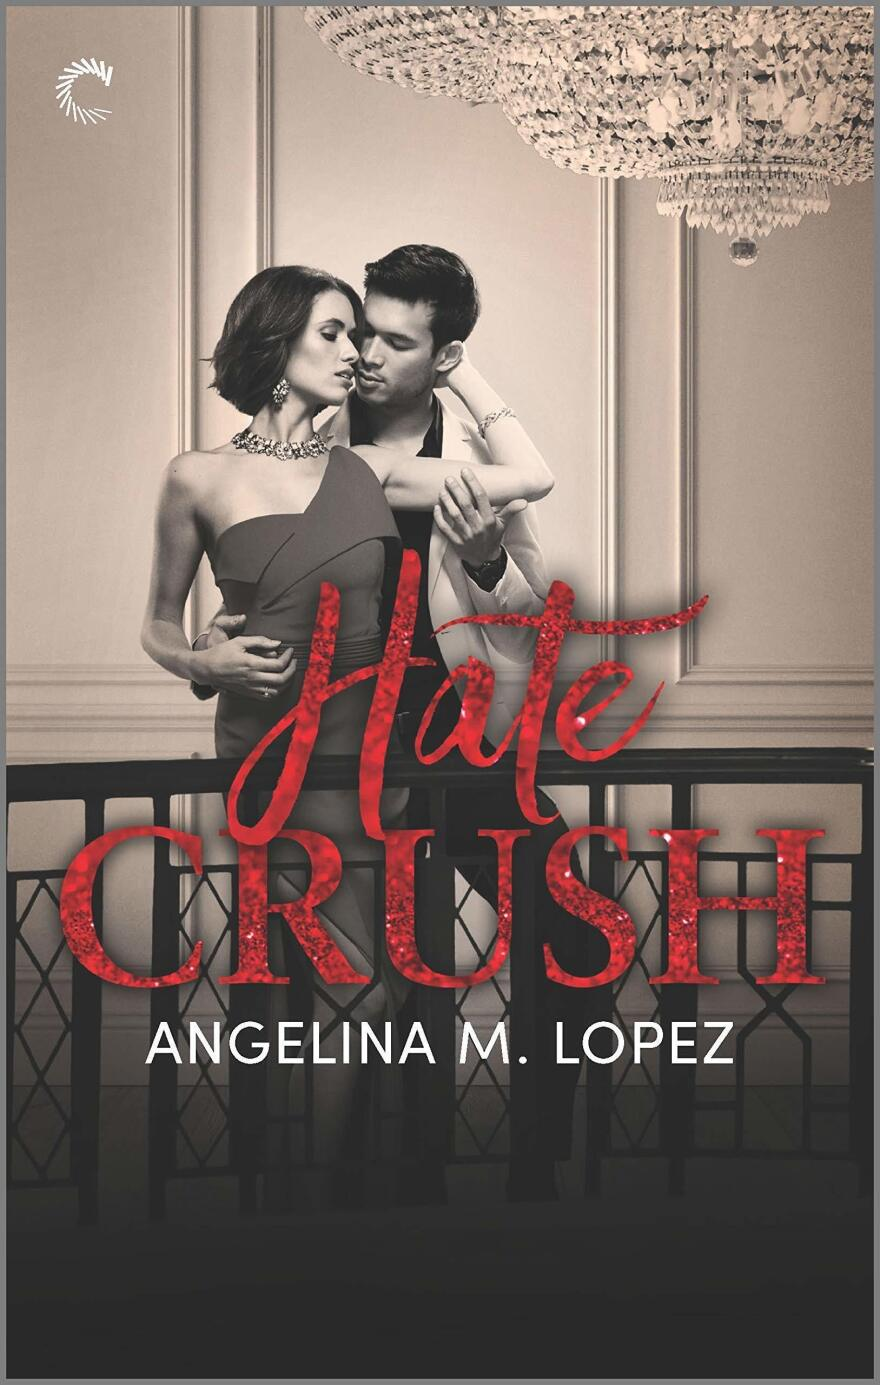 Hate Crush, by Angelina M. Lopez